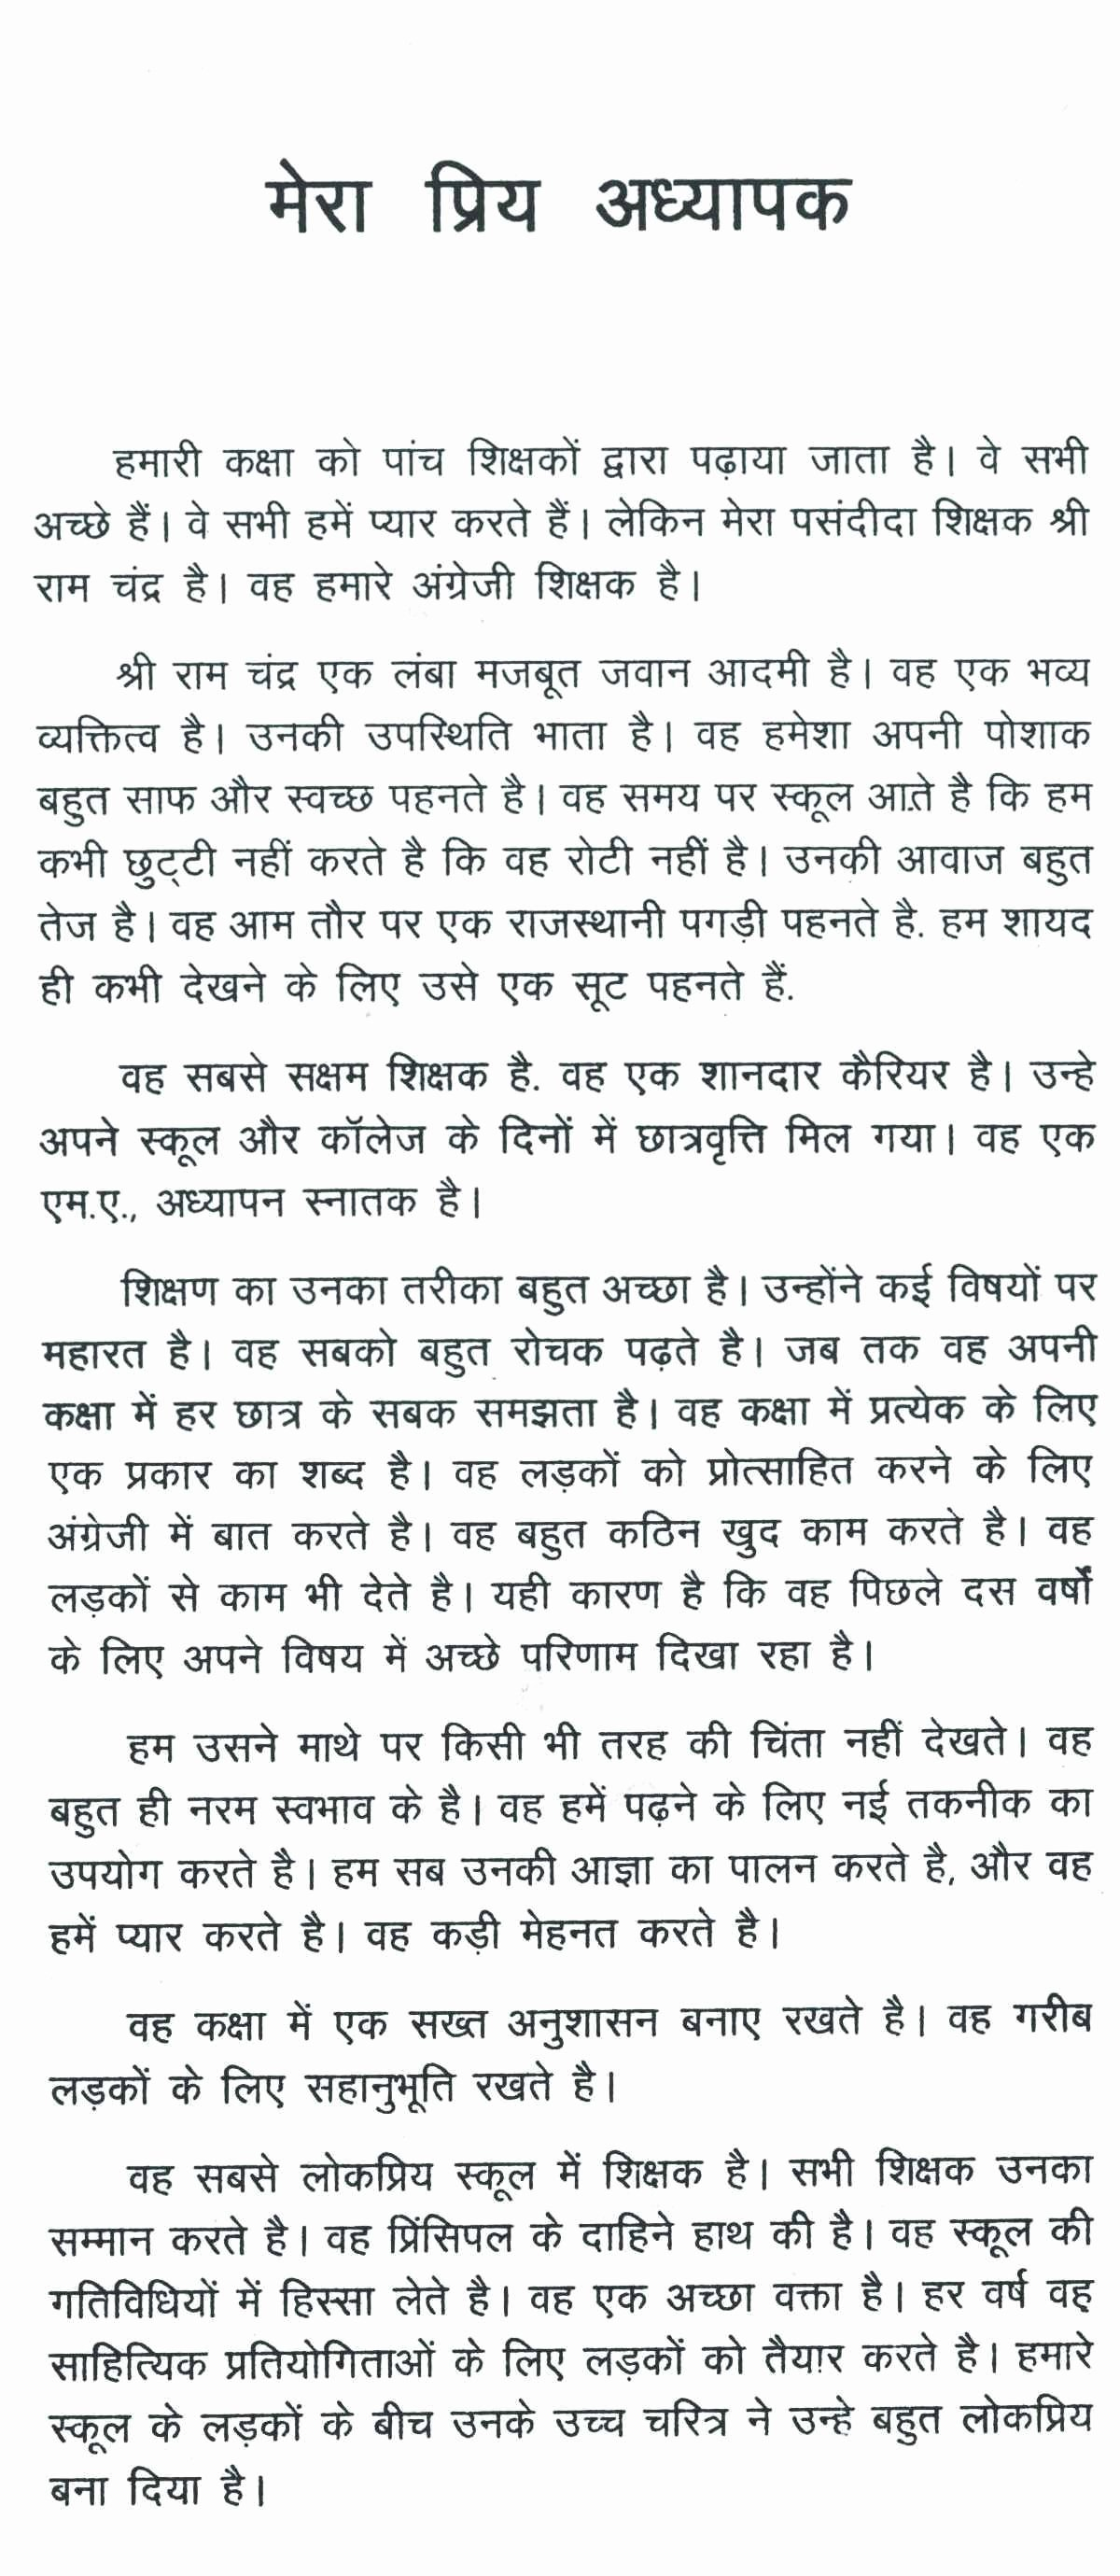 Best Essays Ever Written New My Best Friend Essay for Kids In Hindi south Florida